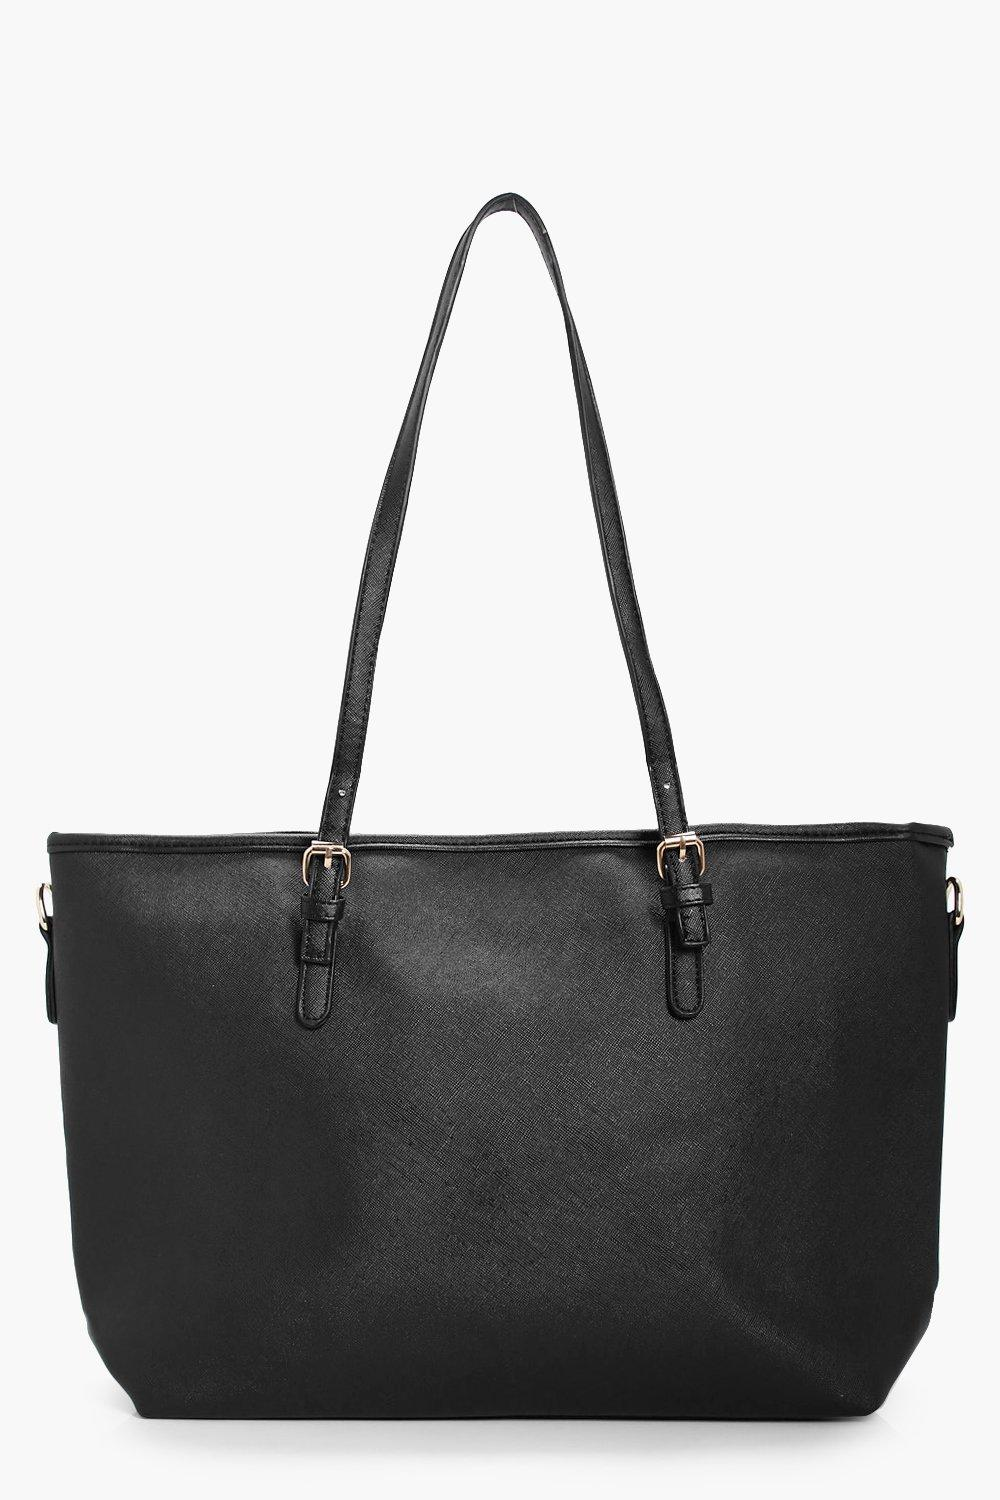 Buckle Detail Shopper Tote - black - Millie Buckle